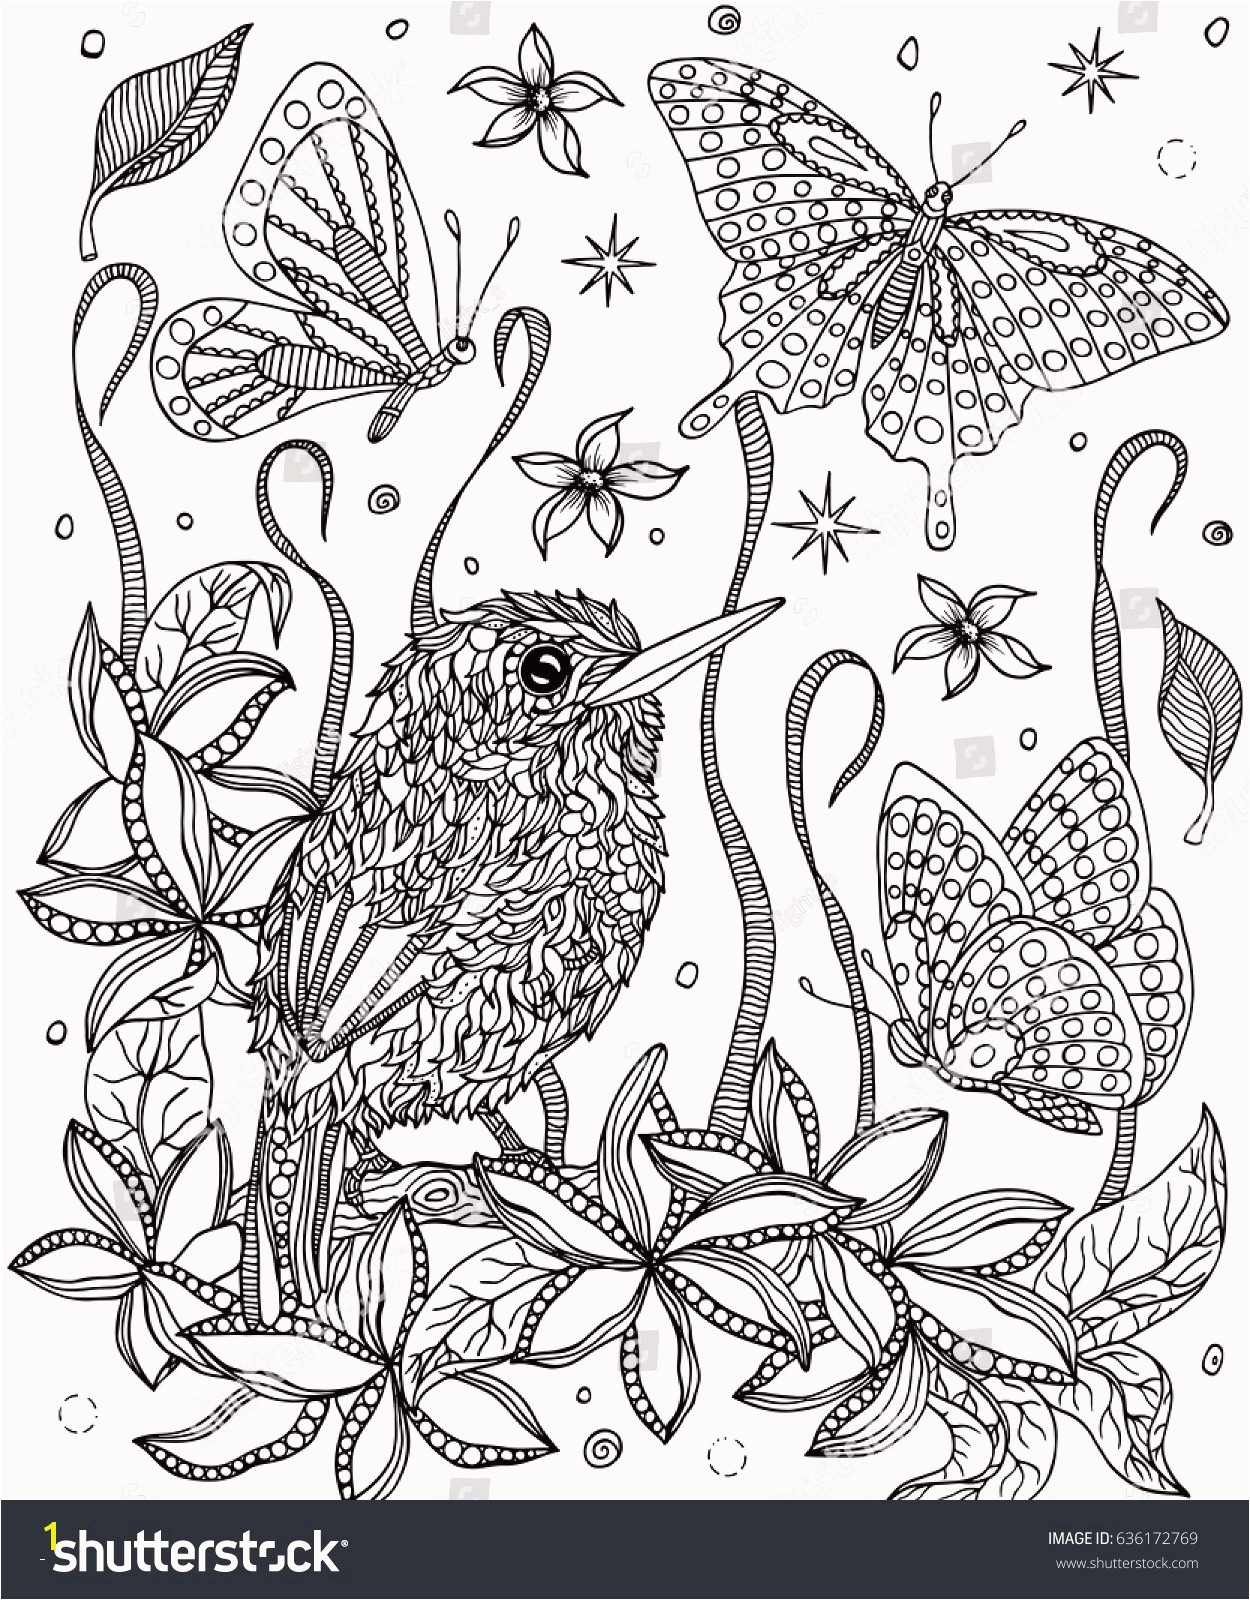 Bird Paradise Coloring Page Awesome Coloring Pages Birds and Flowers Unique Coloring Pages Birds and